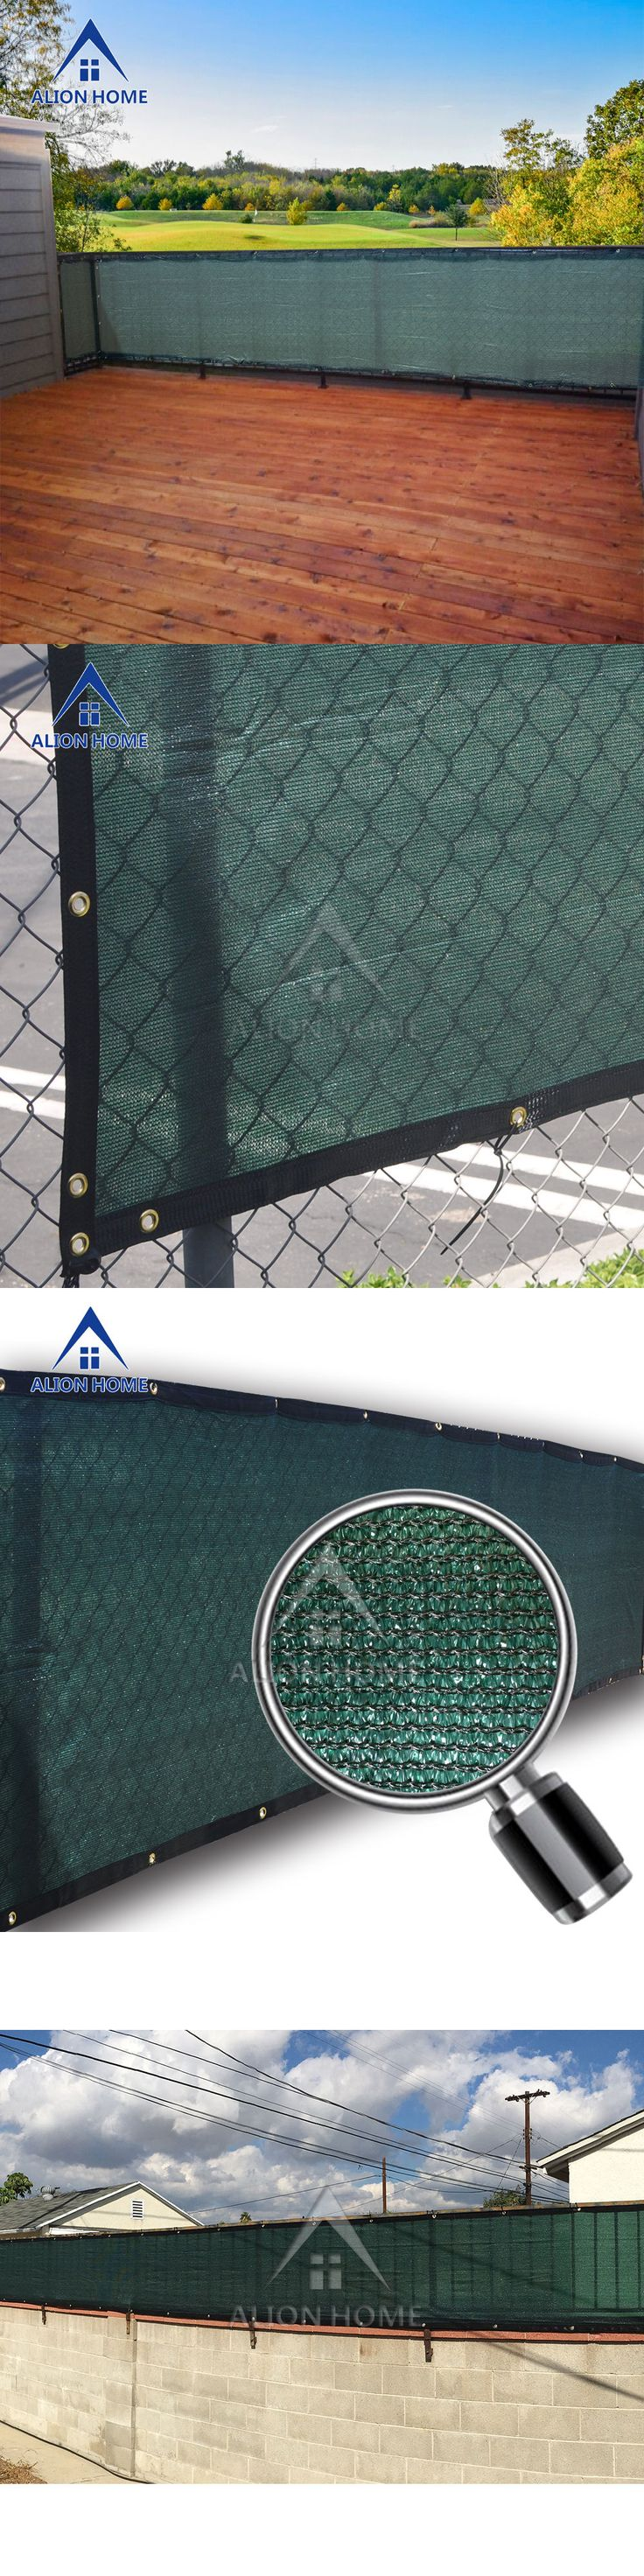 Privacy screen for chain link fence ebay - Privacy Screens Windscreens 180991 Alion Home Custom Sized Patio Fence Privacy Screen